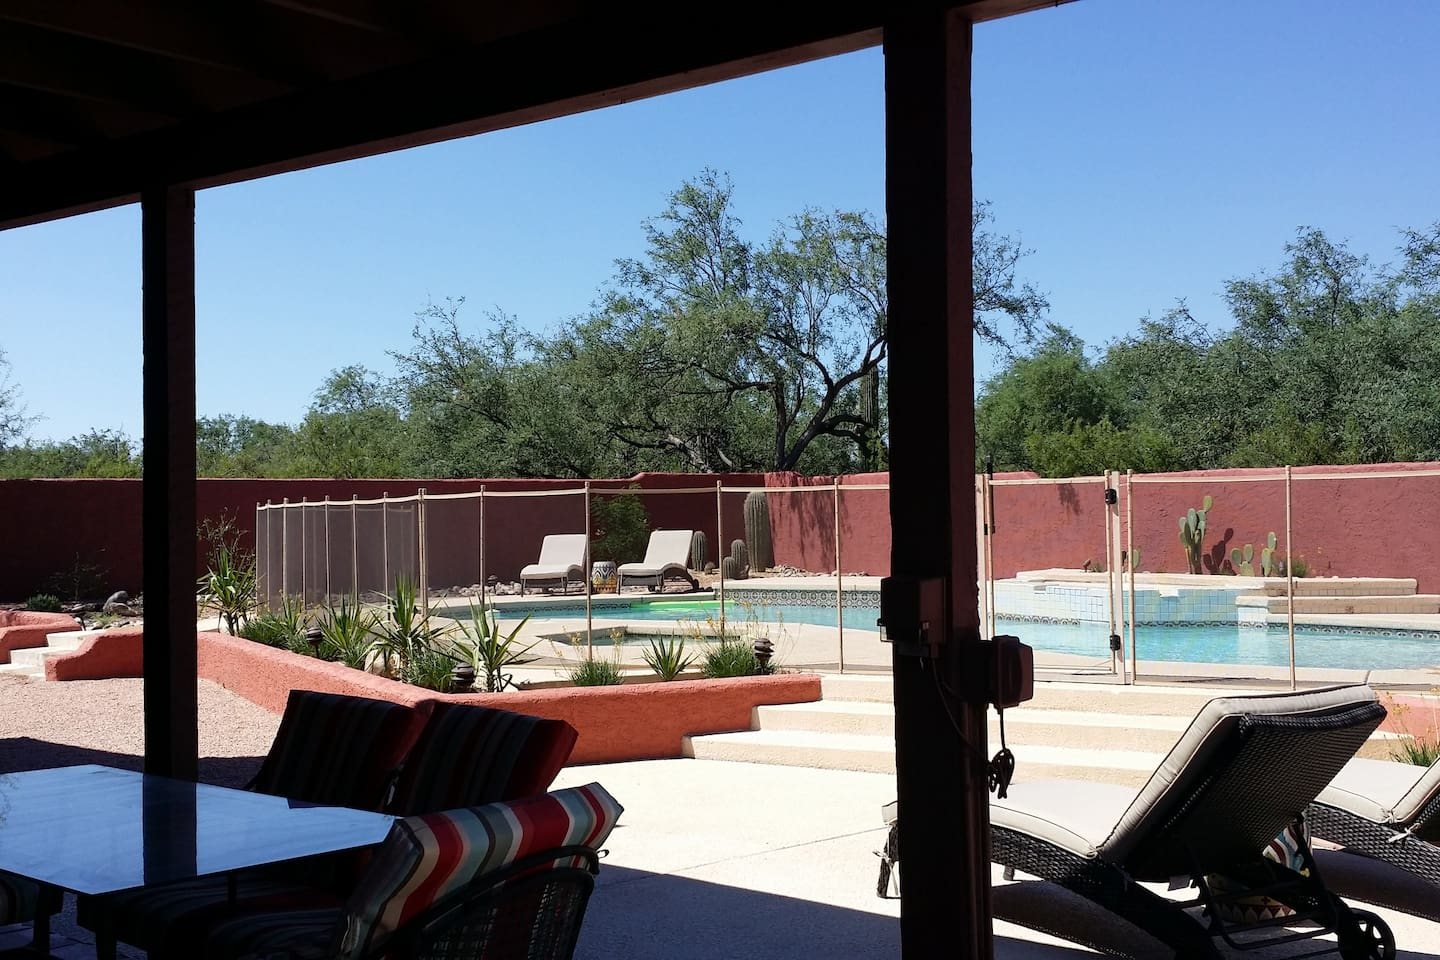 You can enjoy the back yard and stay in the shade if you'd like!